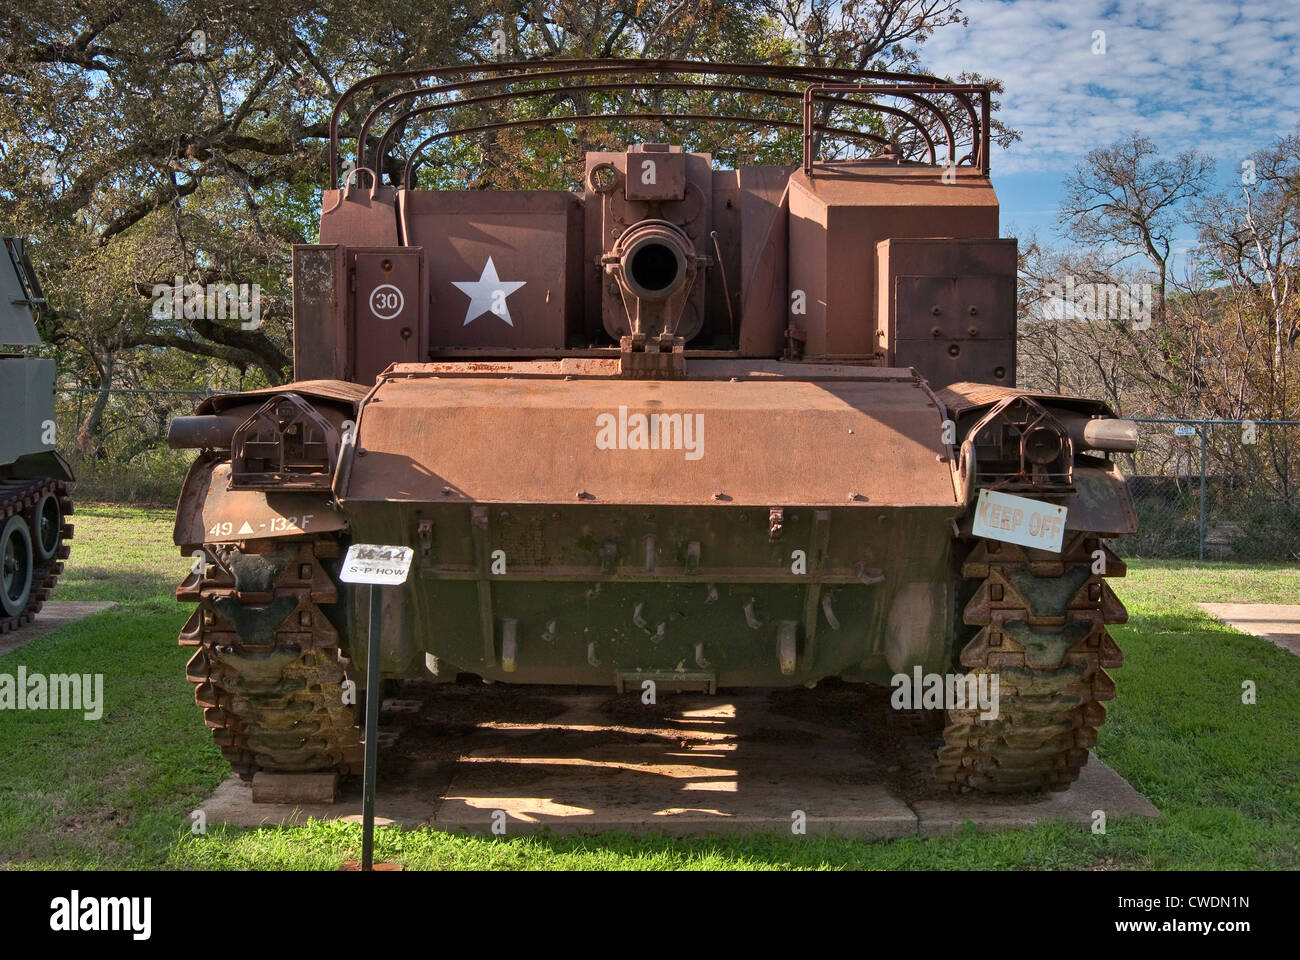 M44 self-propelled howitzer, Artillery Park at Texas Military Forces Museum at Camp Mabry in Austin, Texas, USA - Stock Image